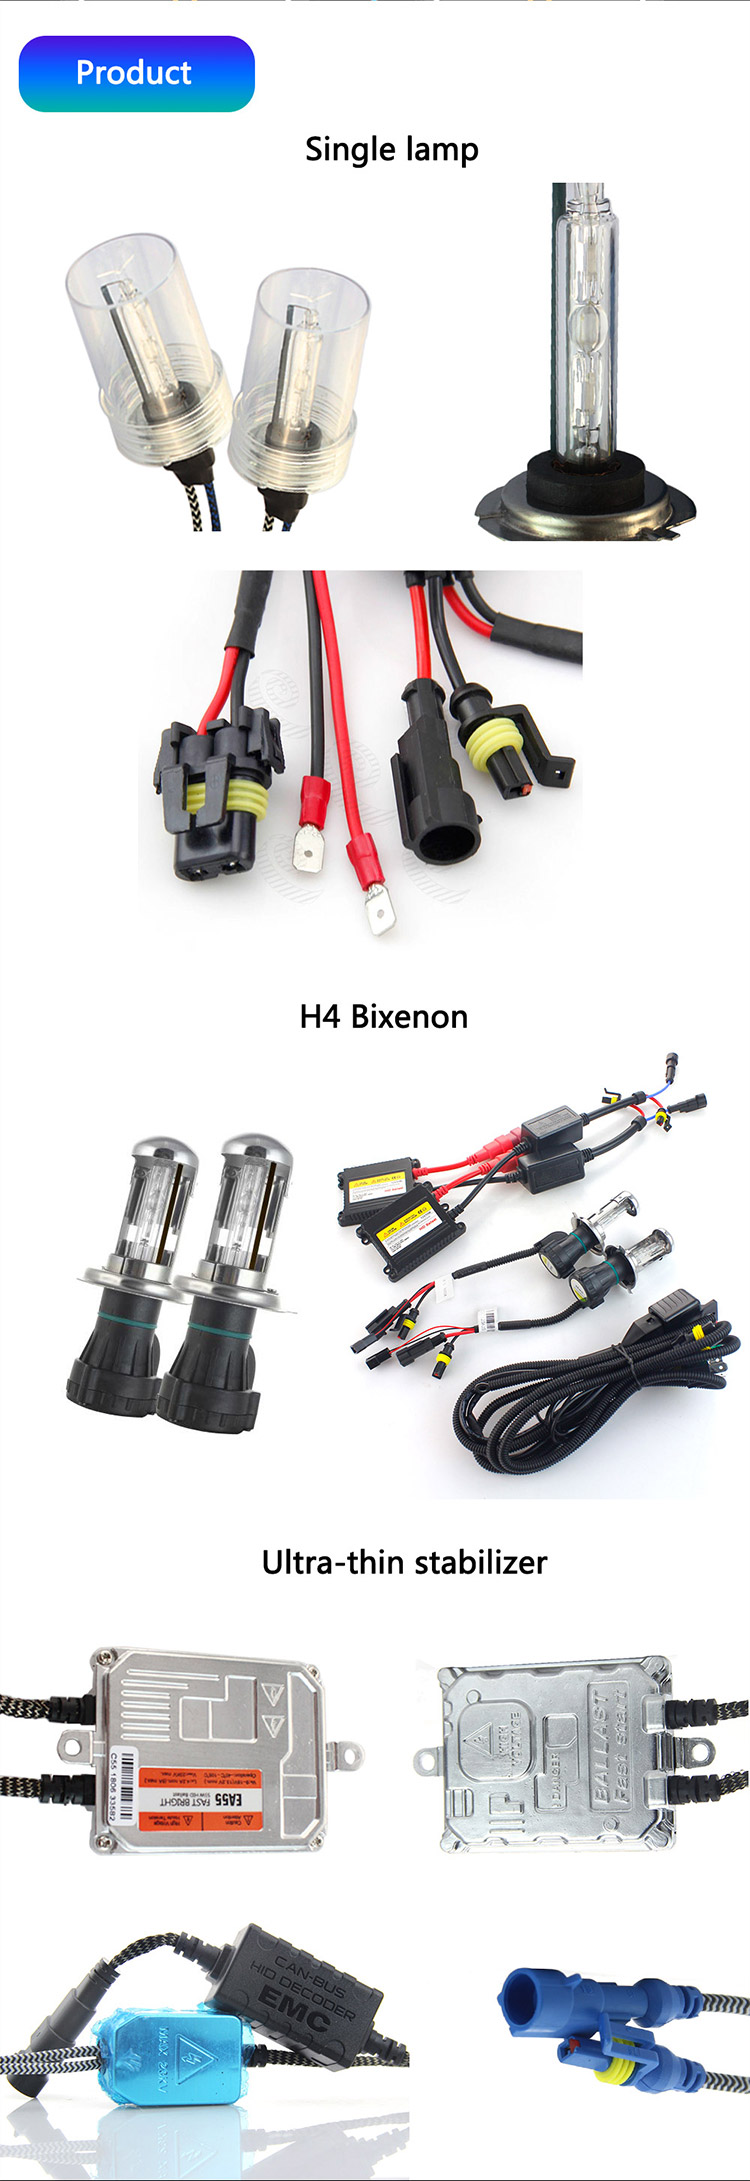 D1 D2 D3 D4 H1 H3 H4 H7 12V 35W Led Xenon Bulb Headlight Ballast Kit